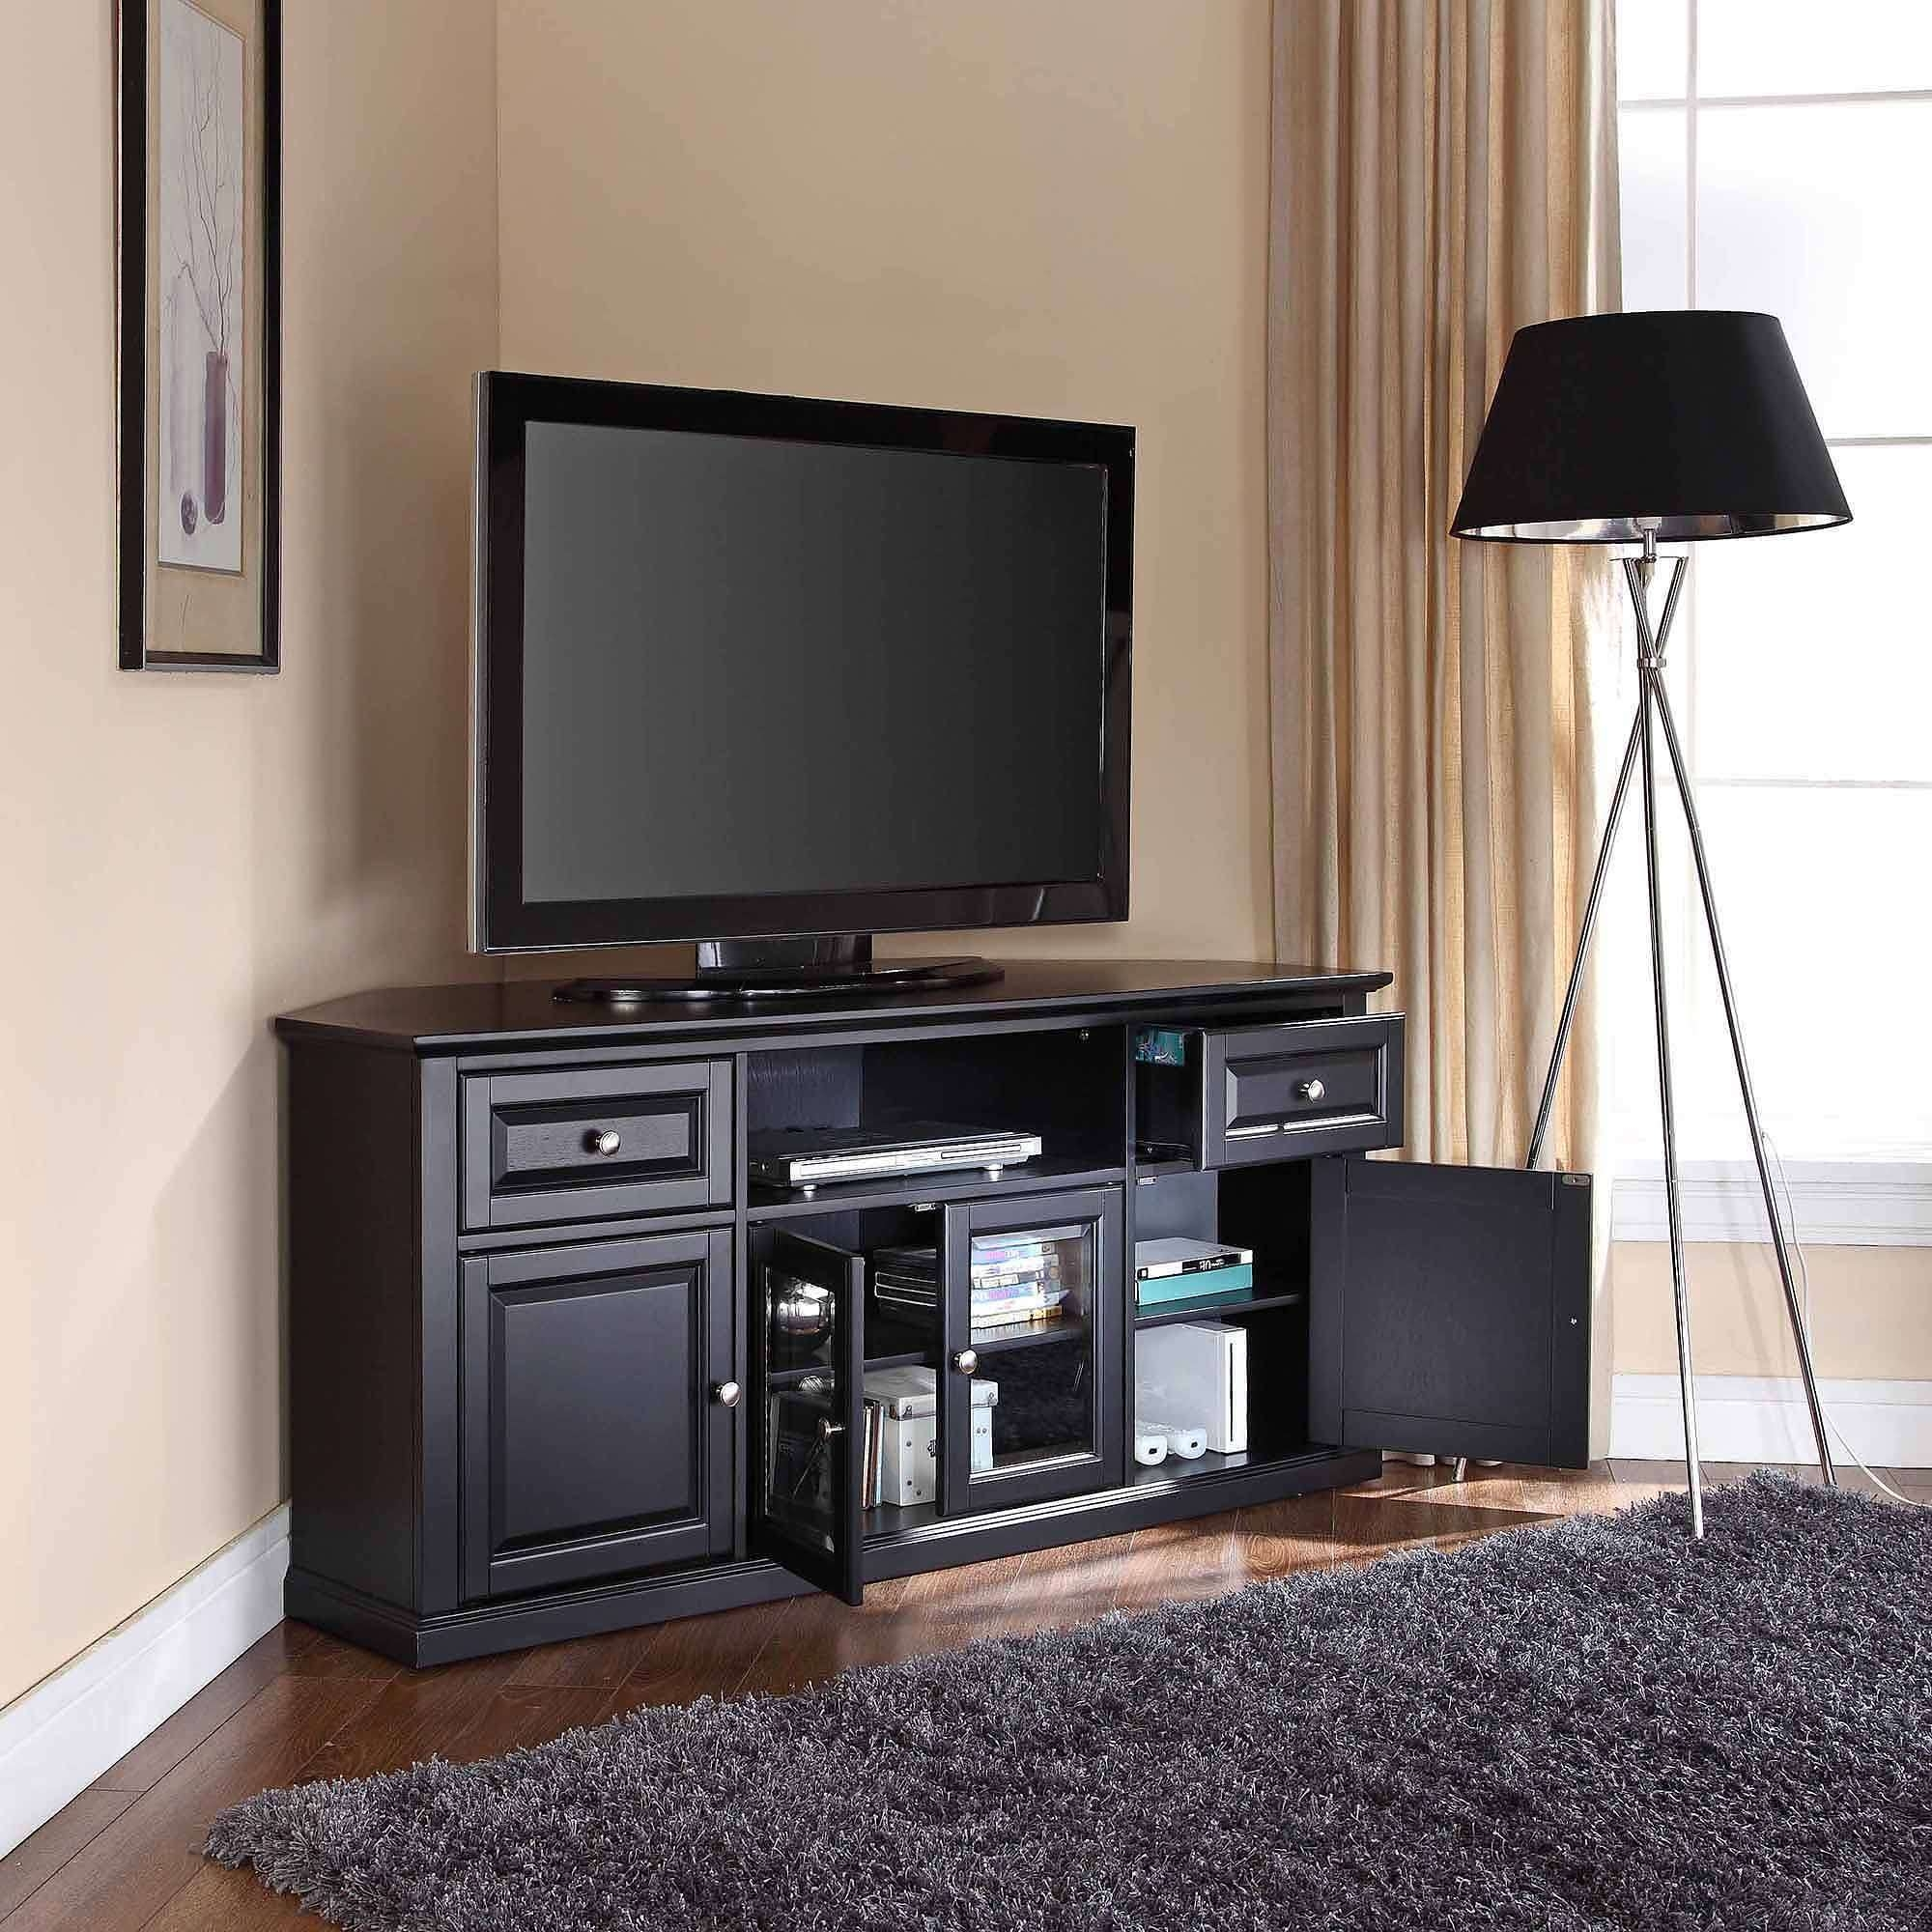 50 Inch Corner Tv Stands Tags : 43 Outstanding 50 Inch Corner Tv Within 50 Inch Corner Tv Cabinets (View 1 of 20)